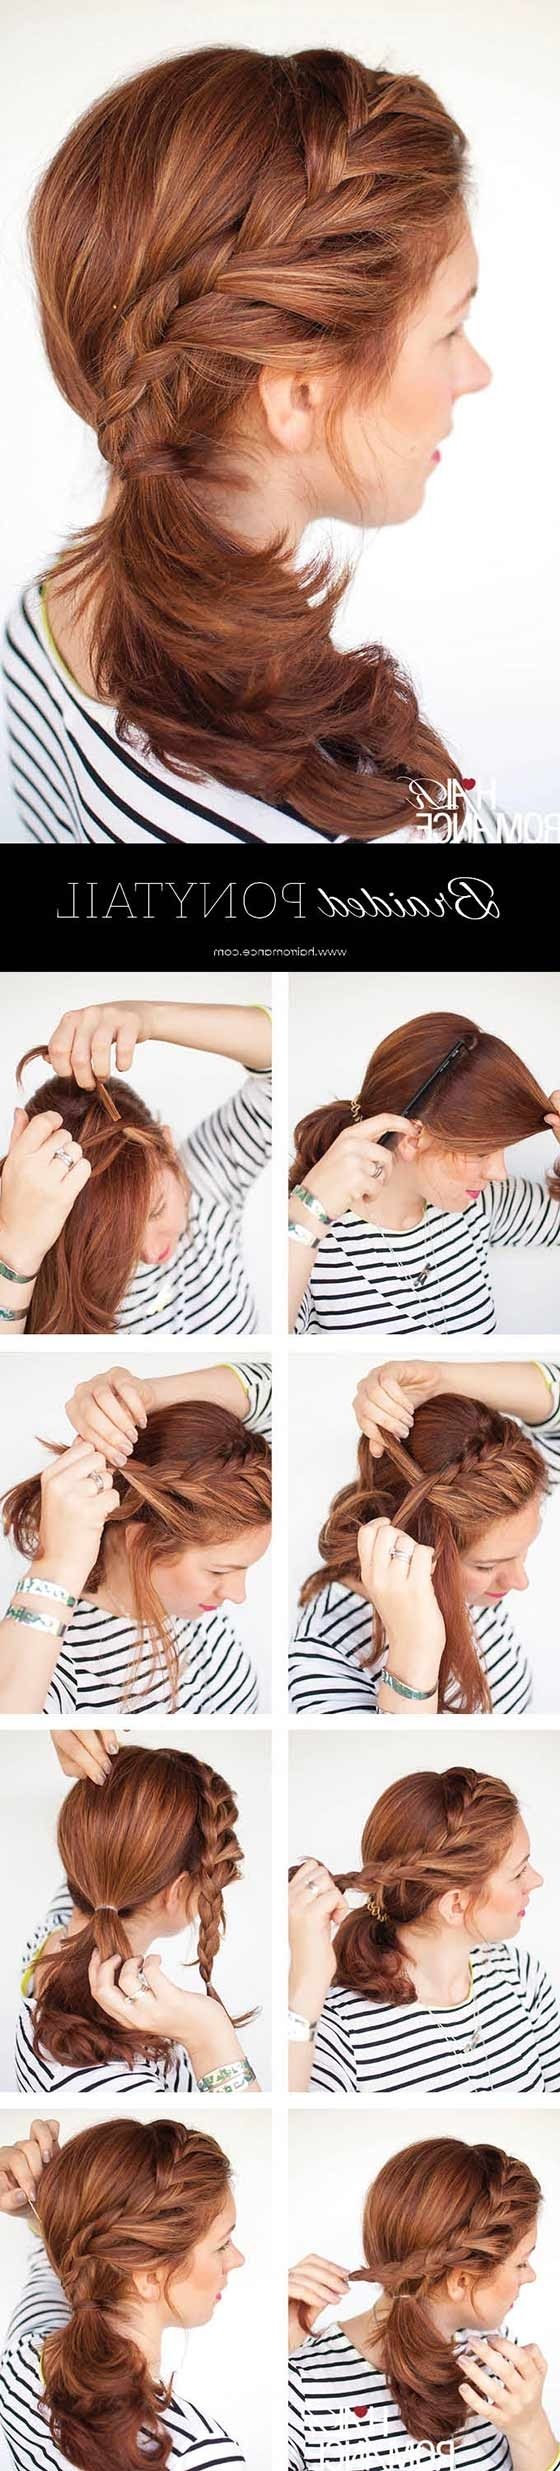 40 Braided Hairstyles For Long Hair Intended For Recent Messy Side Braided Ponytail Hairstyles (View 9 of 20)